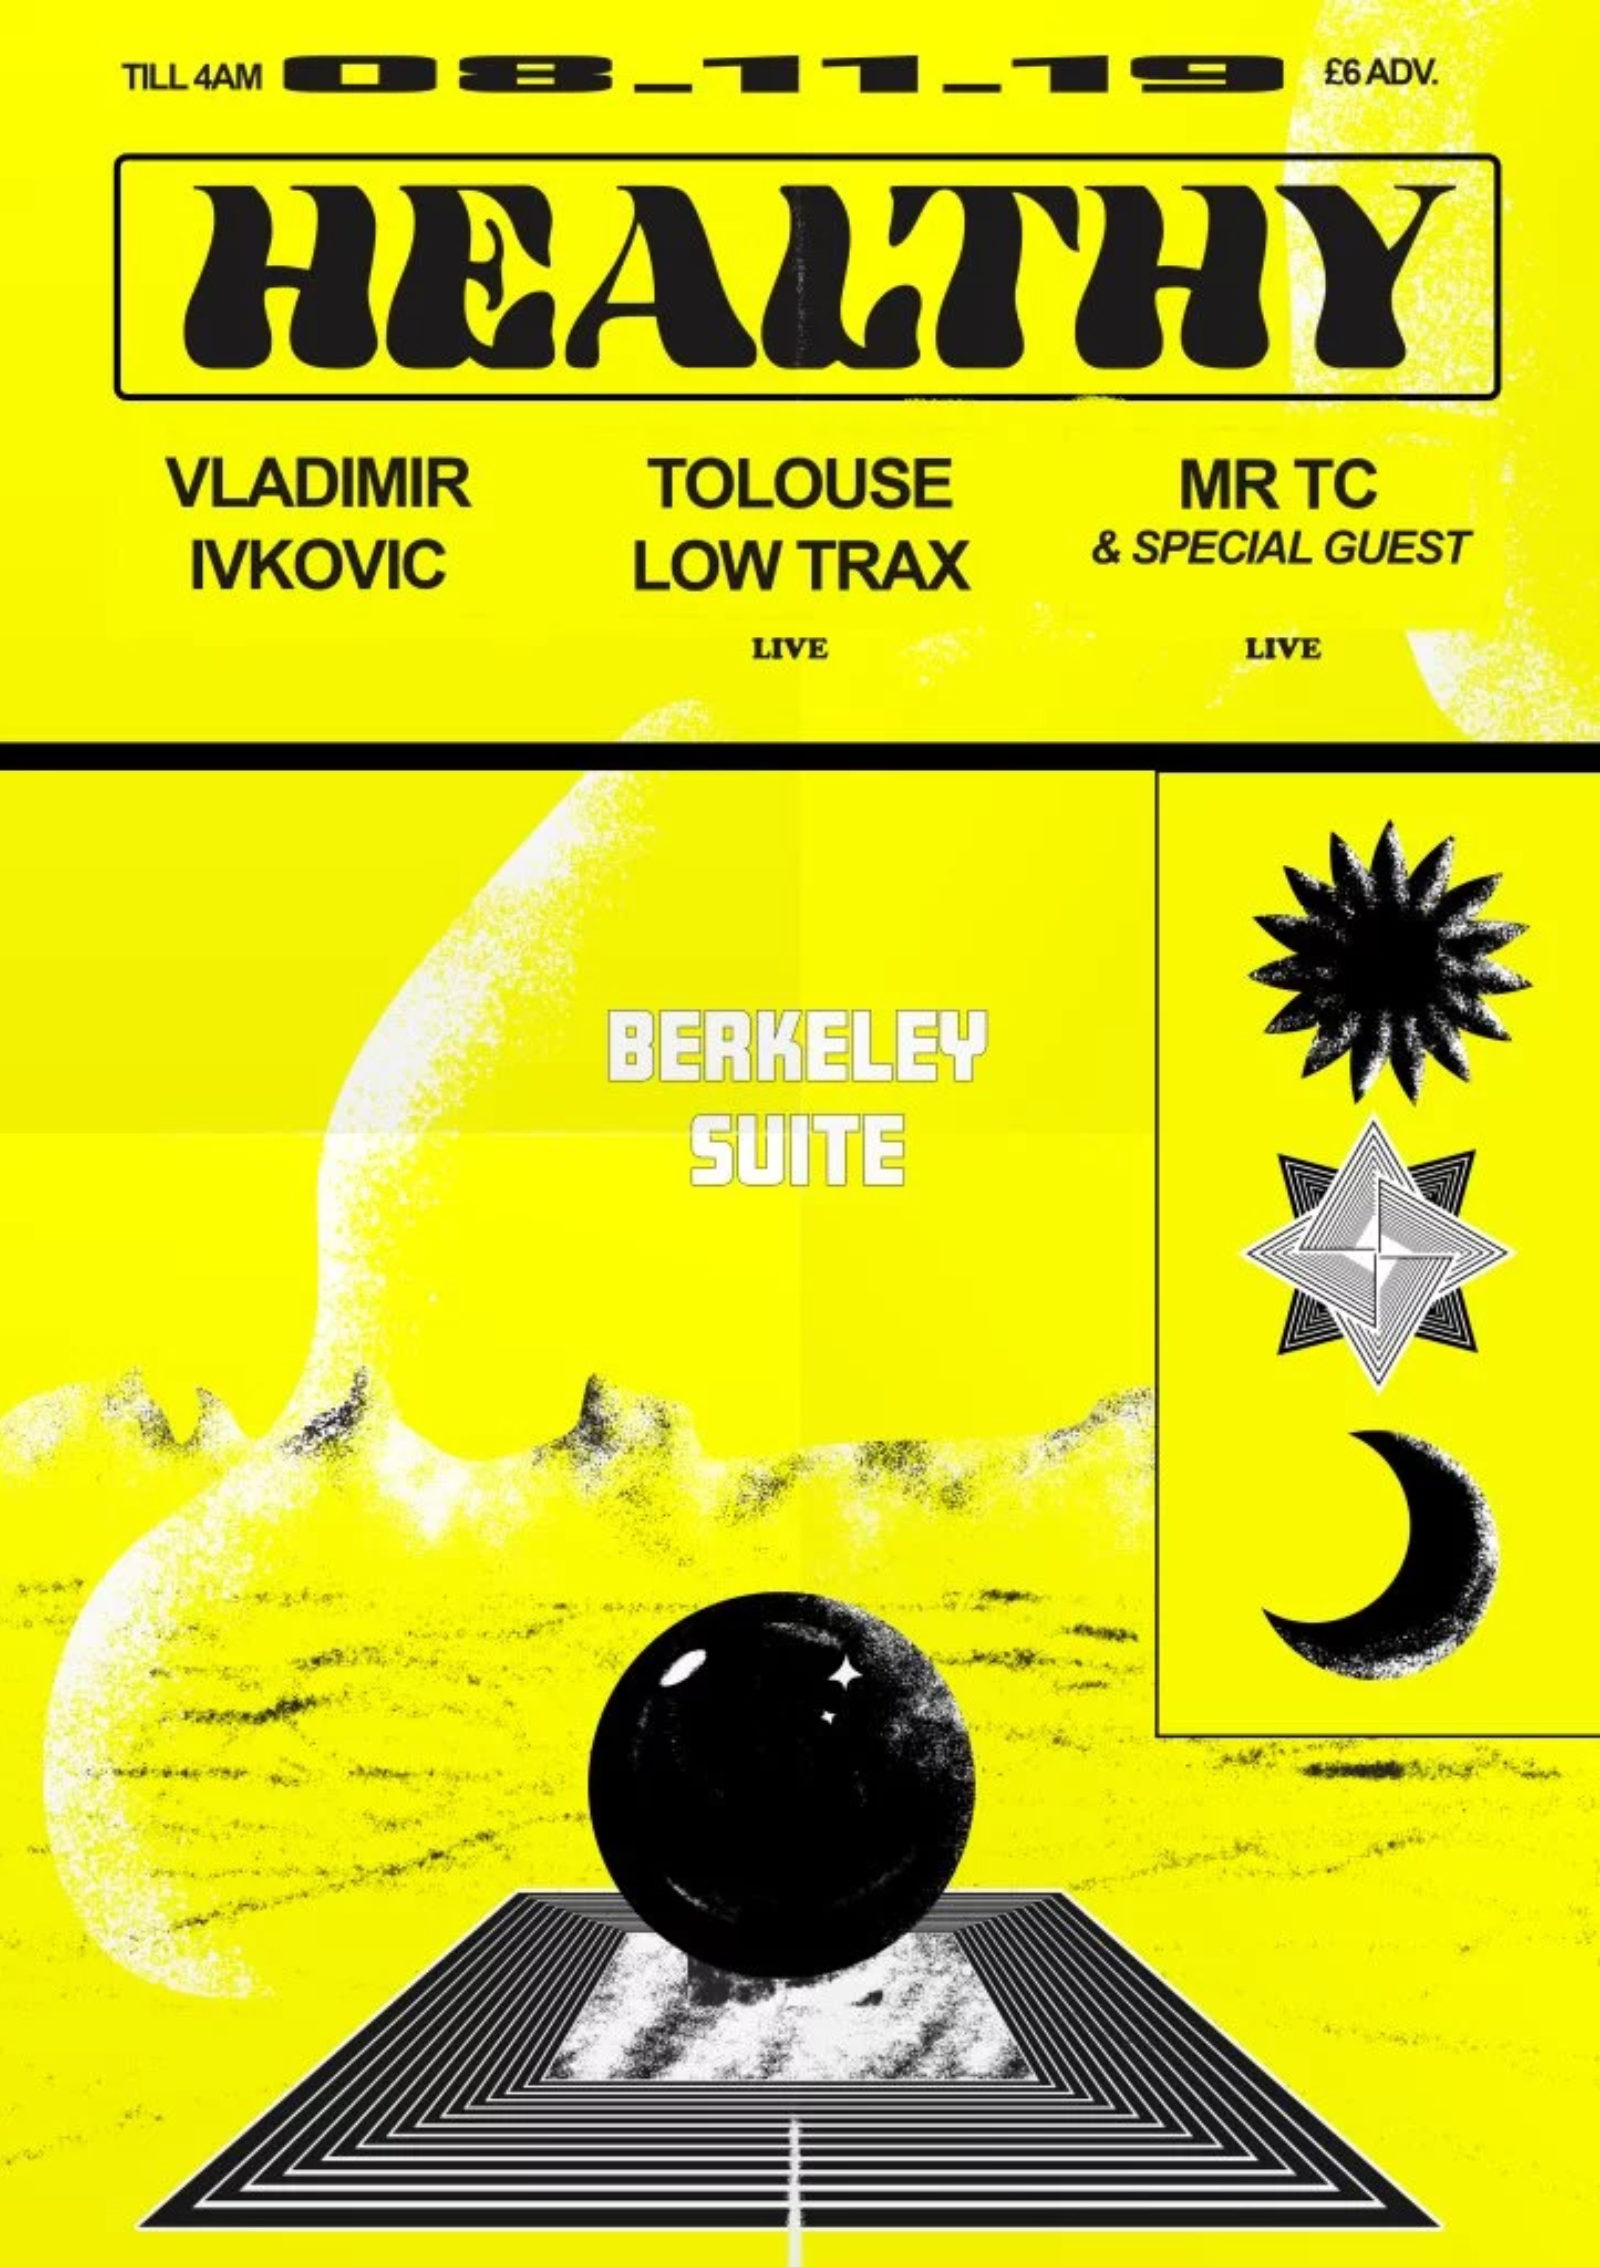 HEALTHY w Vladimir Ivkovic, Tolouse Low Trax, MR TC + more